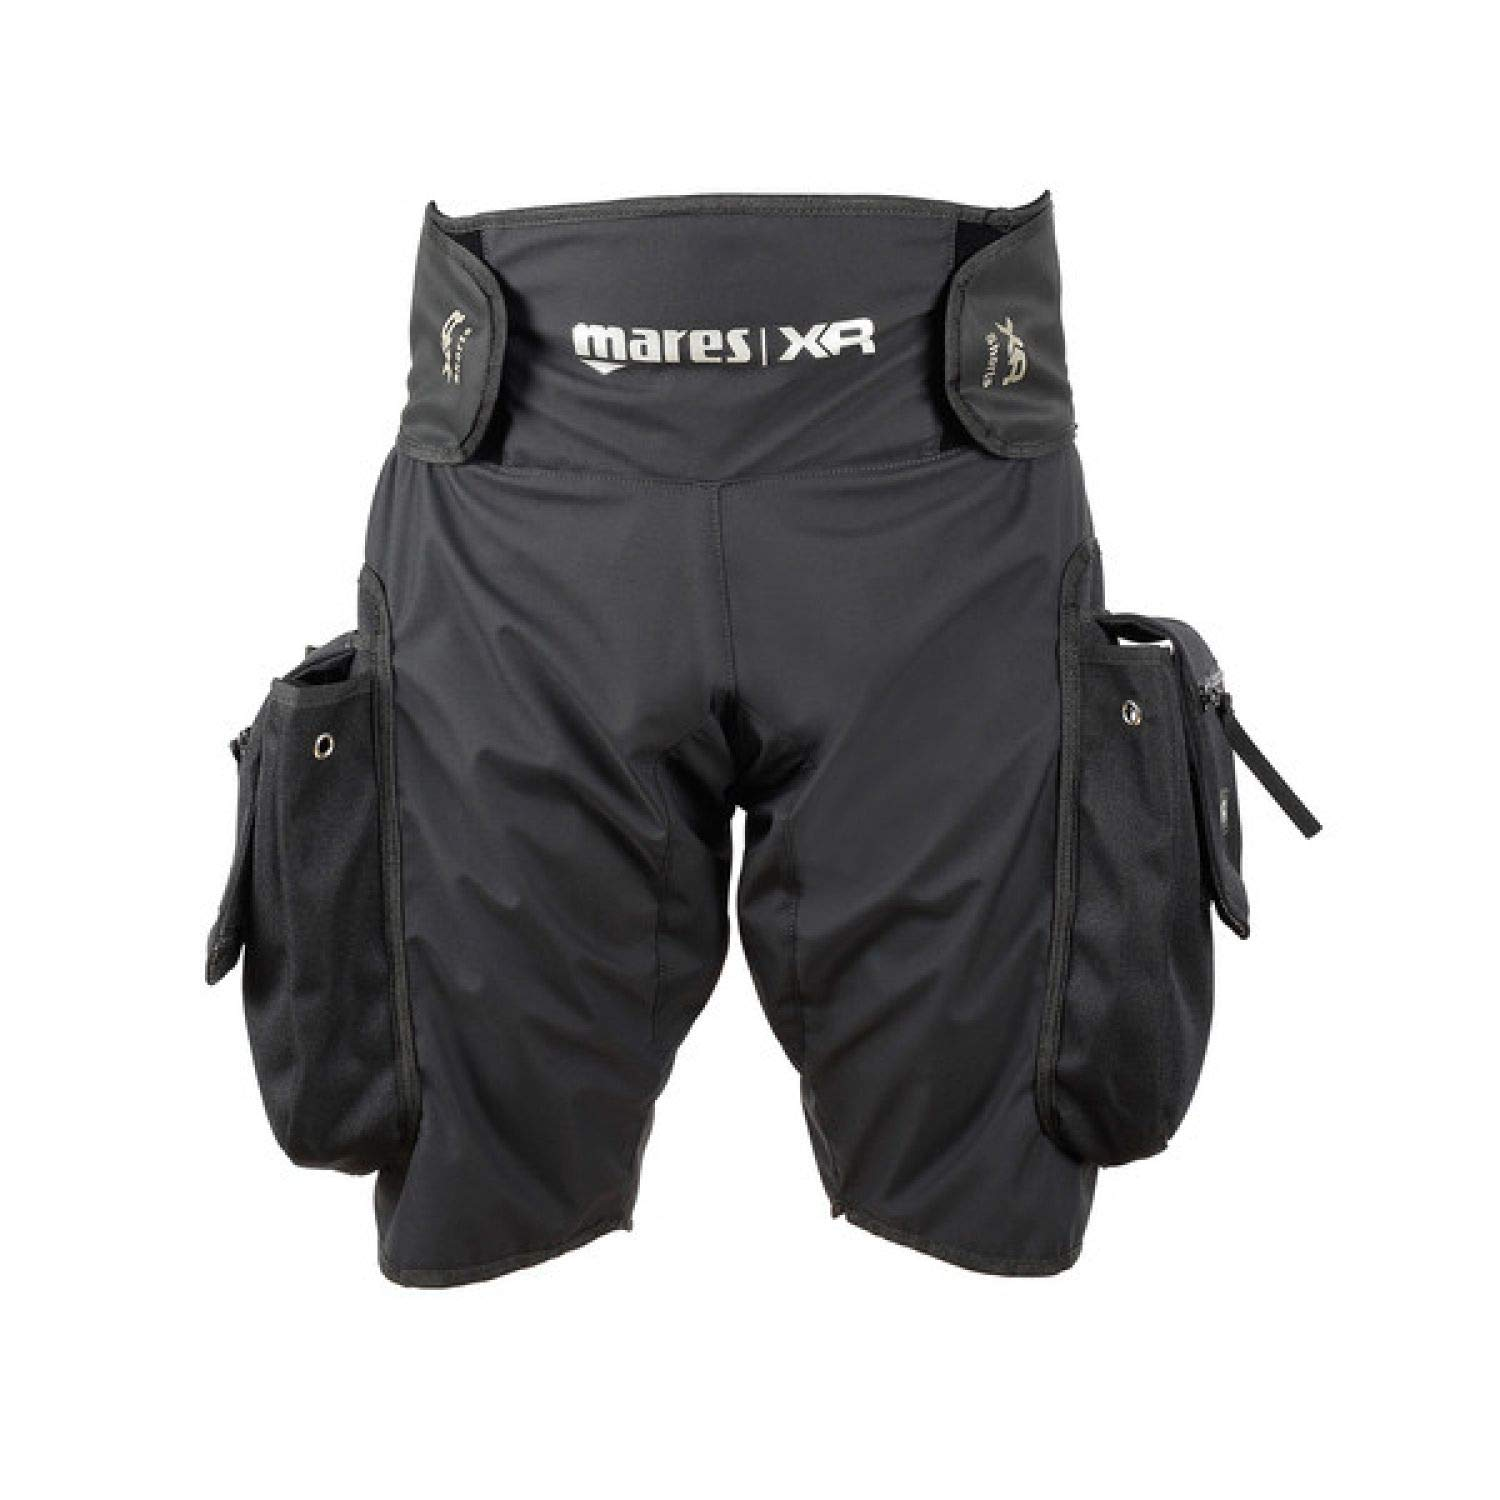 Mares XR Tek Pocket Untra Light Shorts Scuba Diving Wetsuit Tech Gear 412032